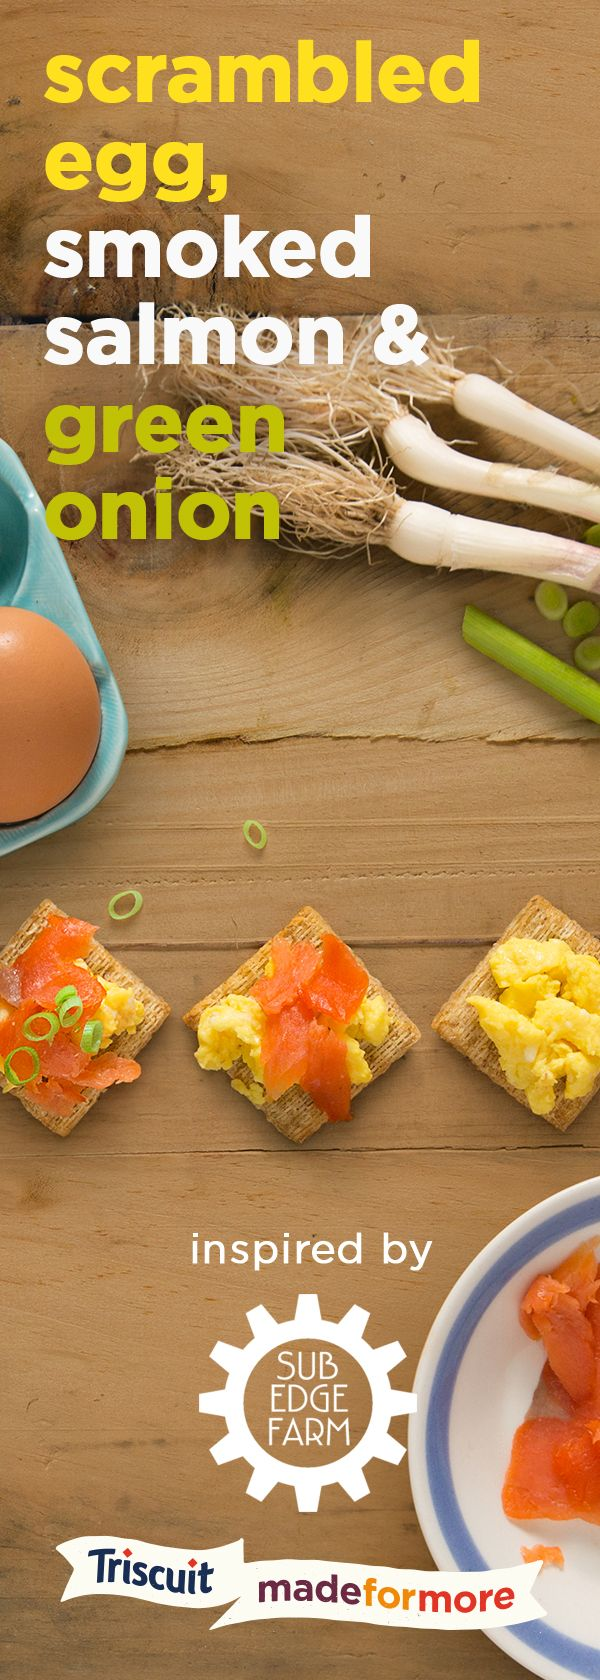 For more snack inspiration from the amazing team at Sub Edge Farm, try layering scrambled egg, smoked salmon and green onion on a TRISCUIT cracker. It's the perfect way to enjoy a little taste of breakfast any time of the day!